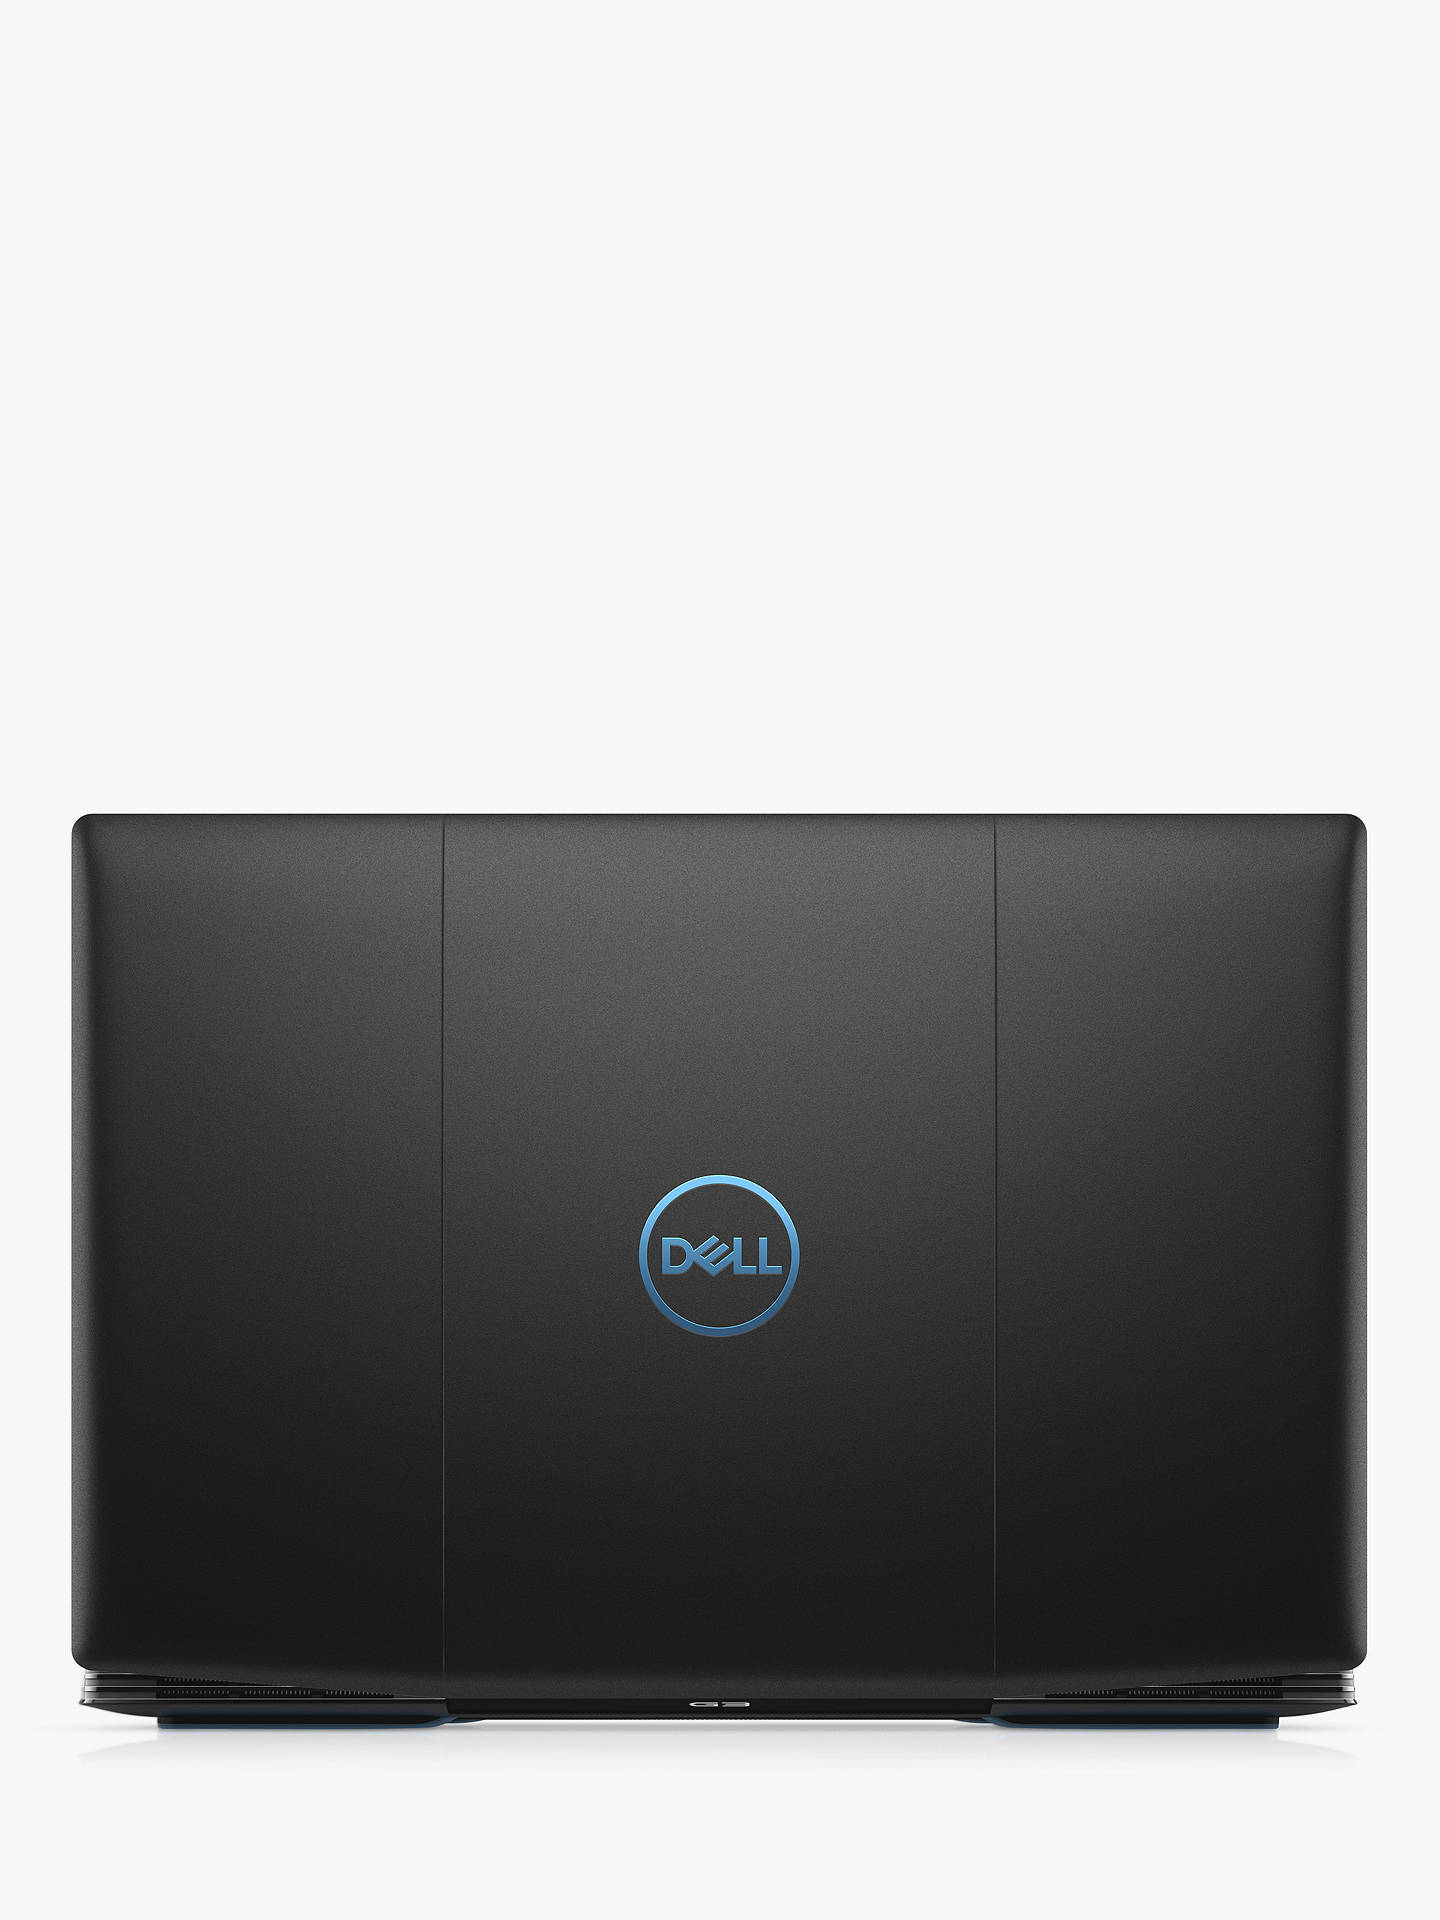 Dell G3 15 3590 Laptop Intel Core I5 Processor 8gb Ram 1tb Hdd 128gb Ssd Geforce Gtx 1650 15 6 Full Hd Deep Space Black At John Lewis Partners